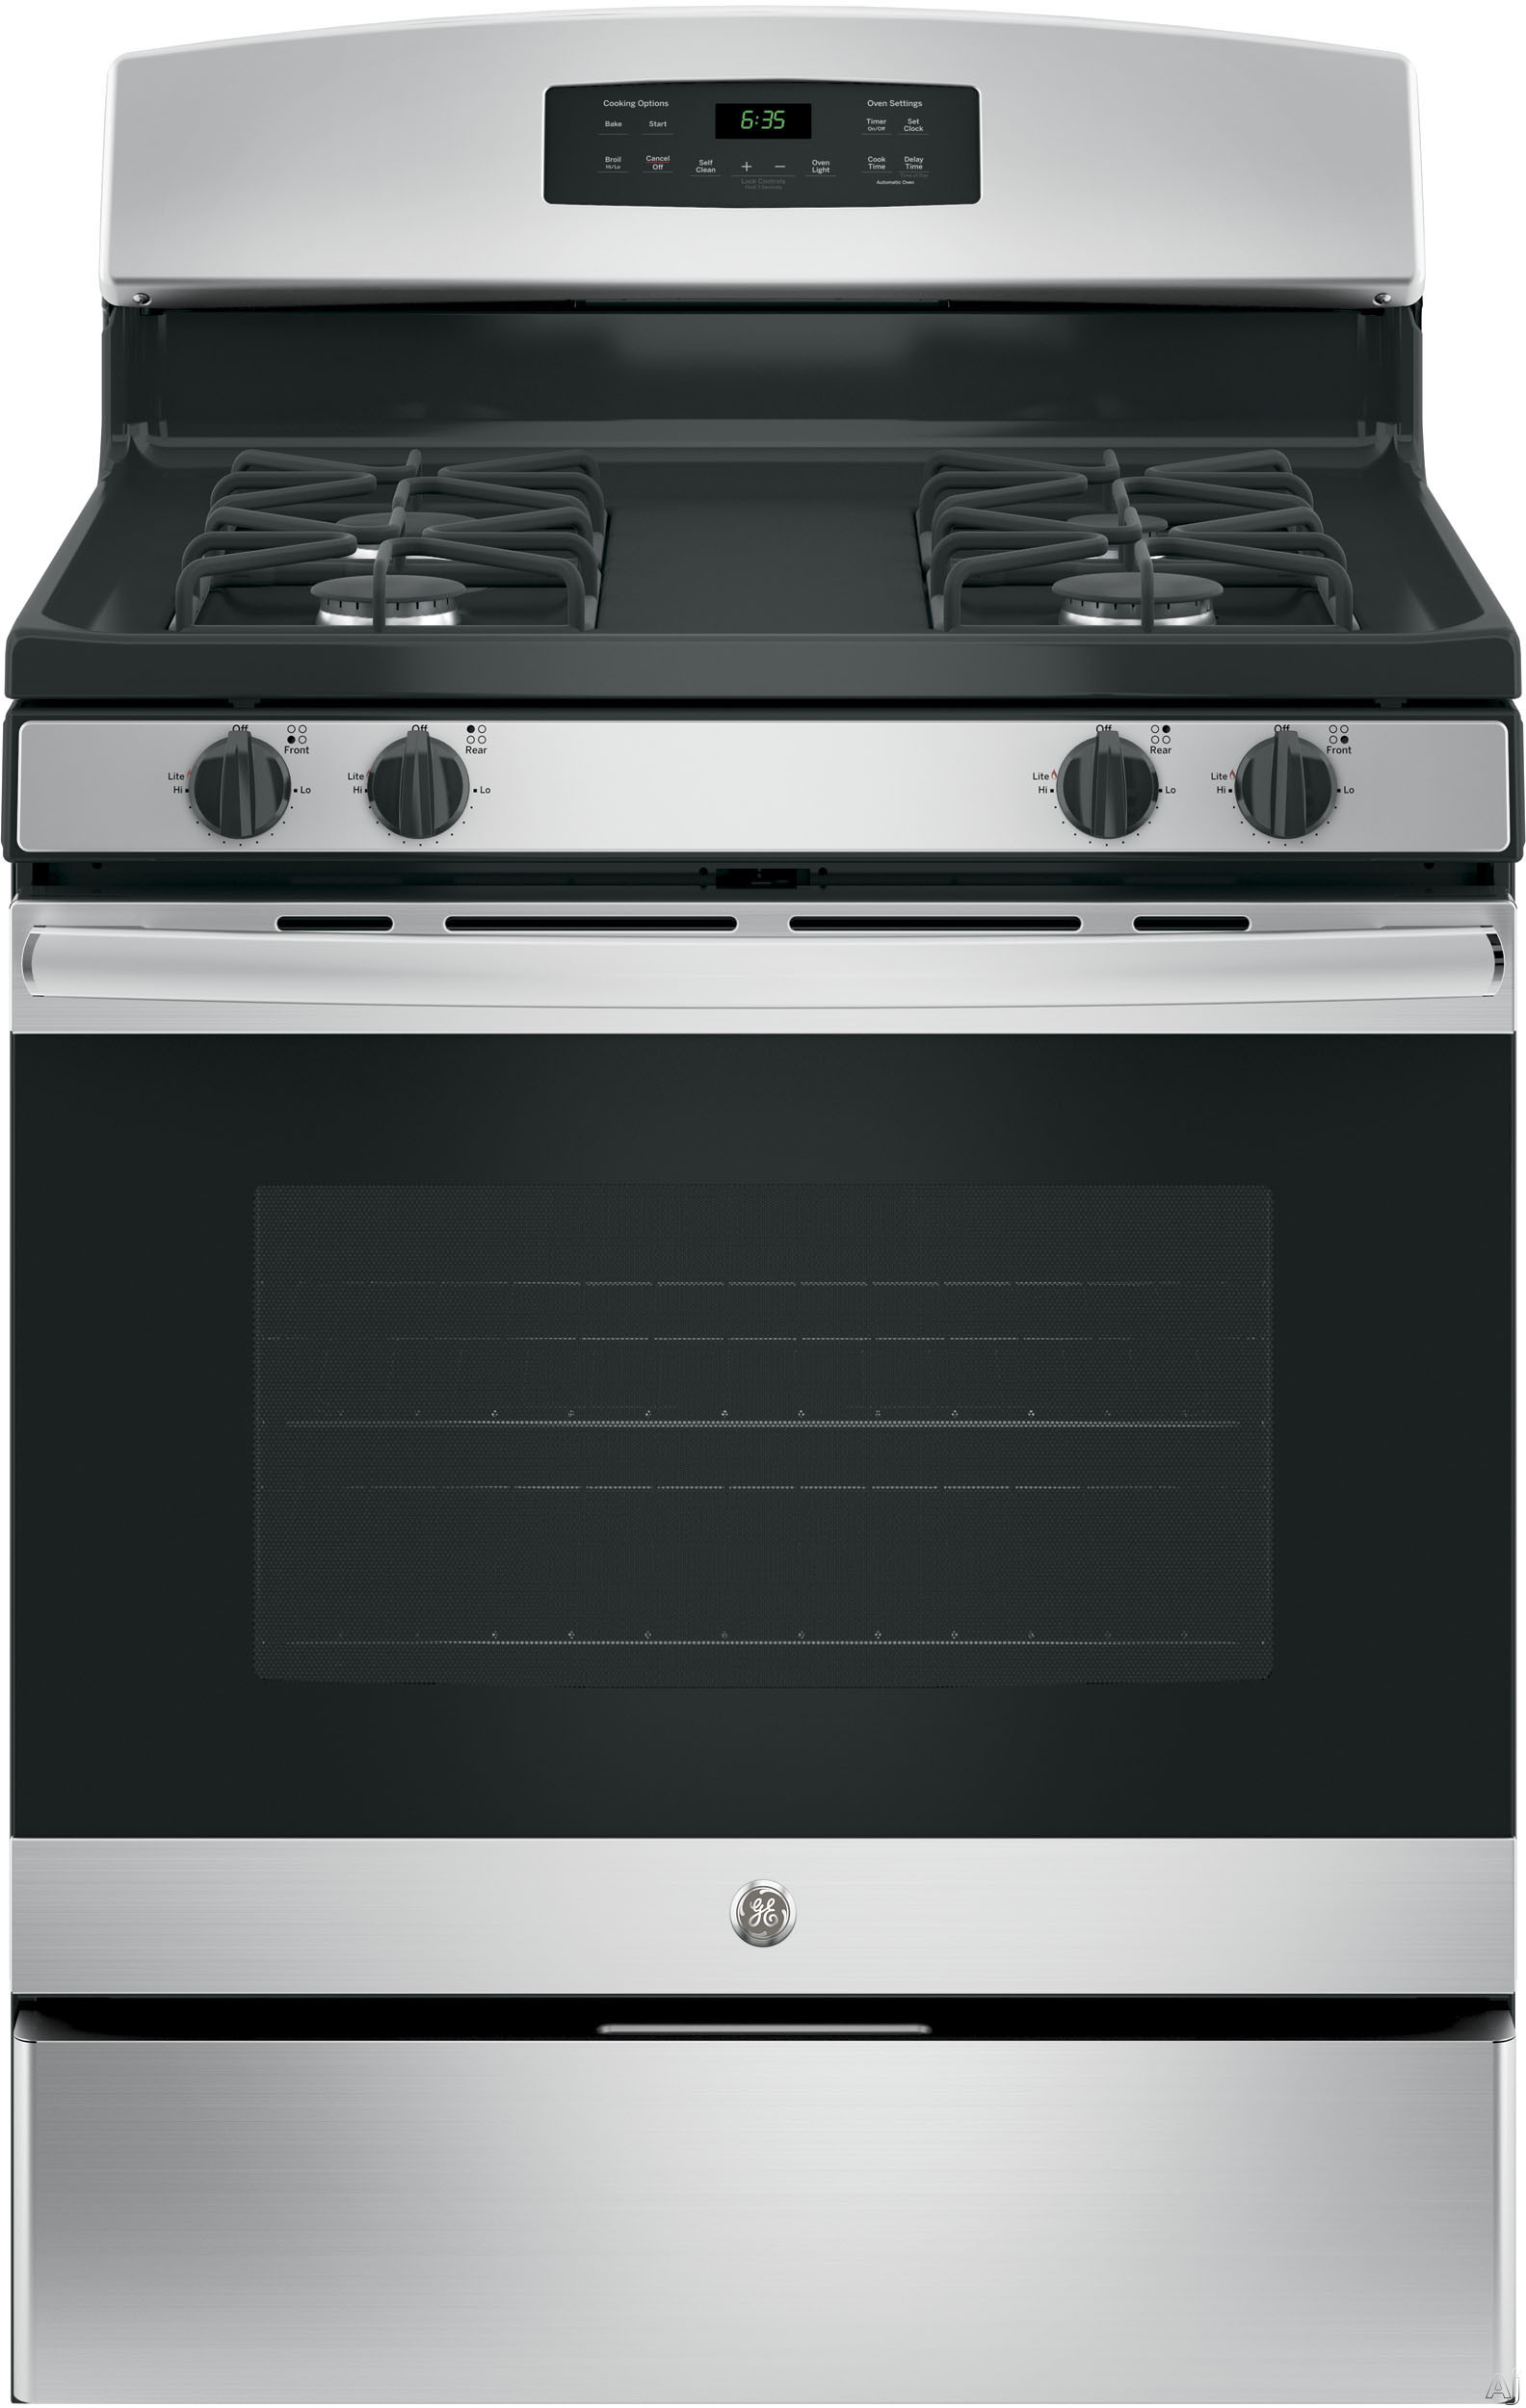 GE JGB635REKSS 30 Inch Freestanding Gas Range with Precise Simmer Burner, Storage Drawer, Self-Clean, In-Oven Broiler, 4 Sealed Burners, 5.0 cu. ft. Capacity and Star-K Certified: Stainless Steel